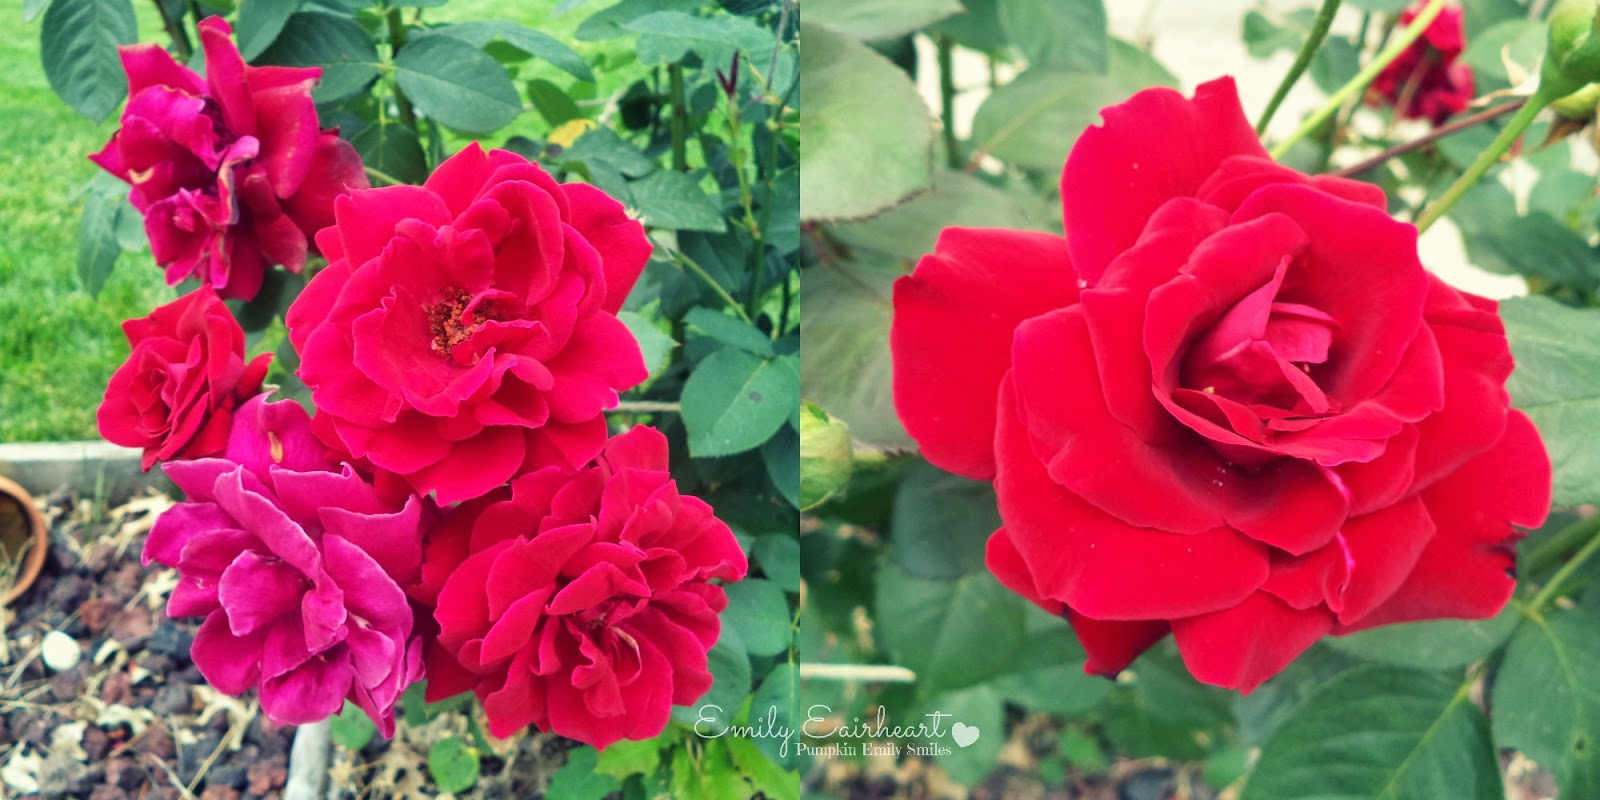 Two images of red roses.